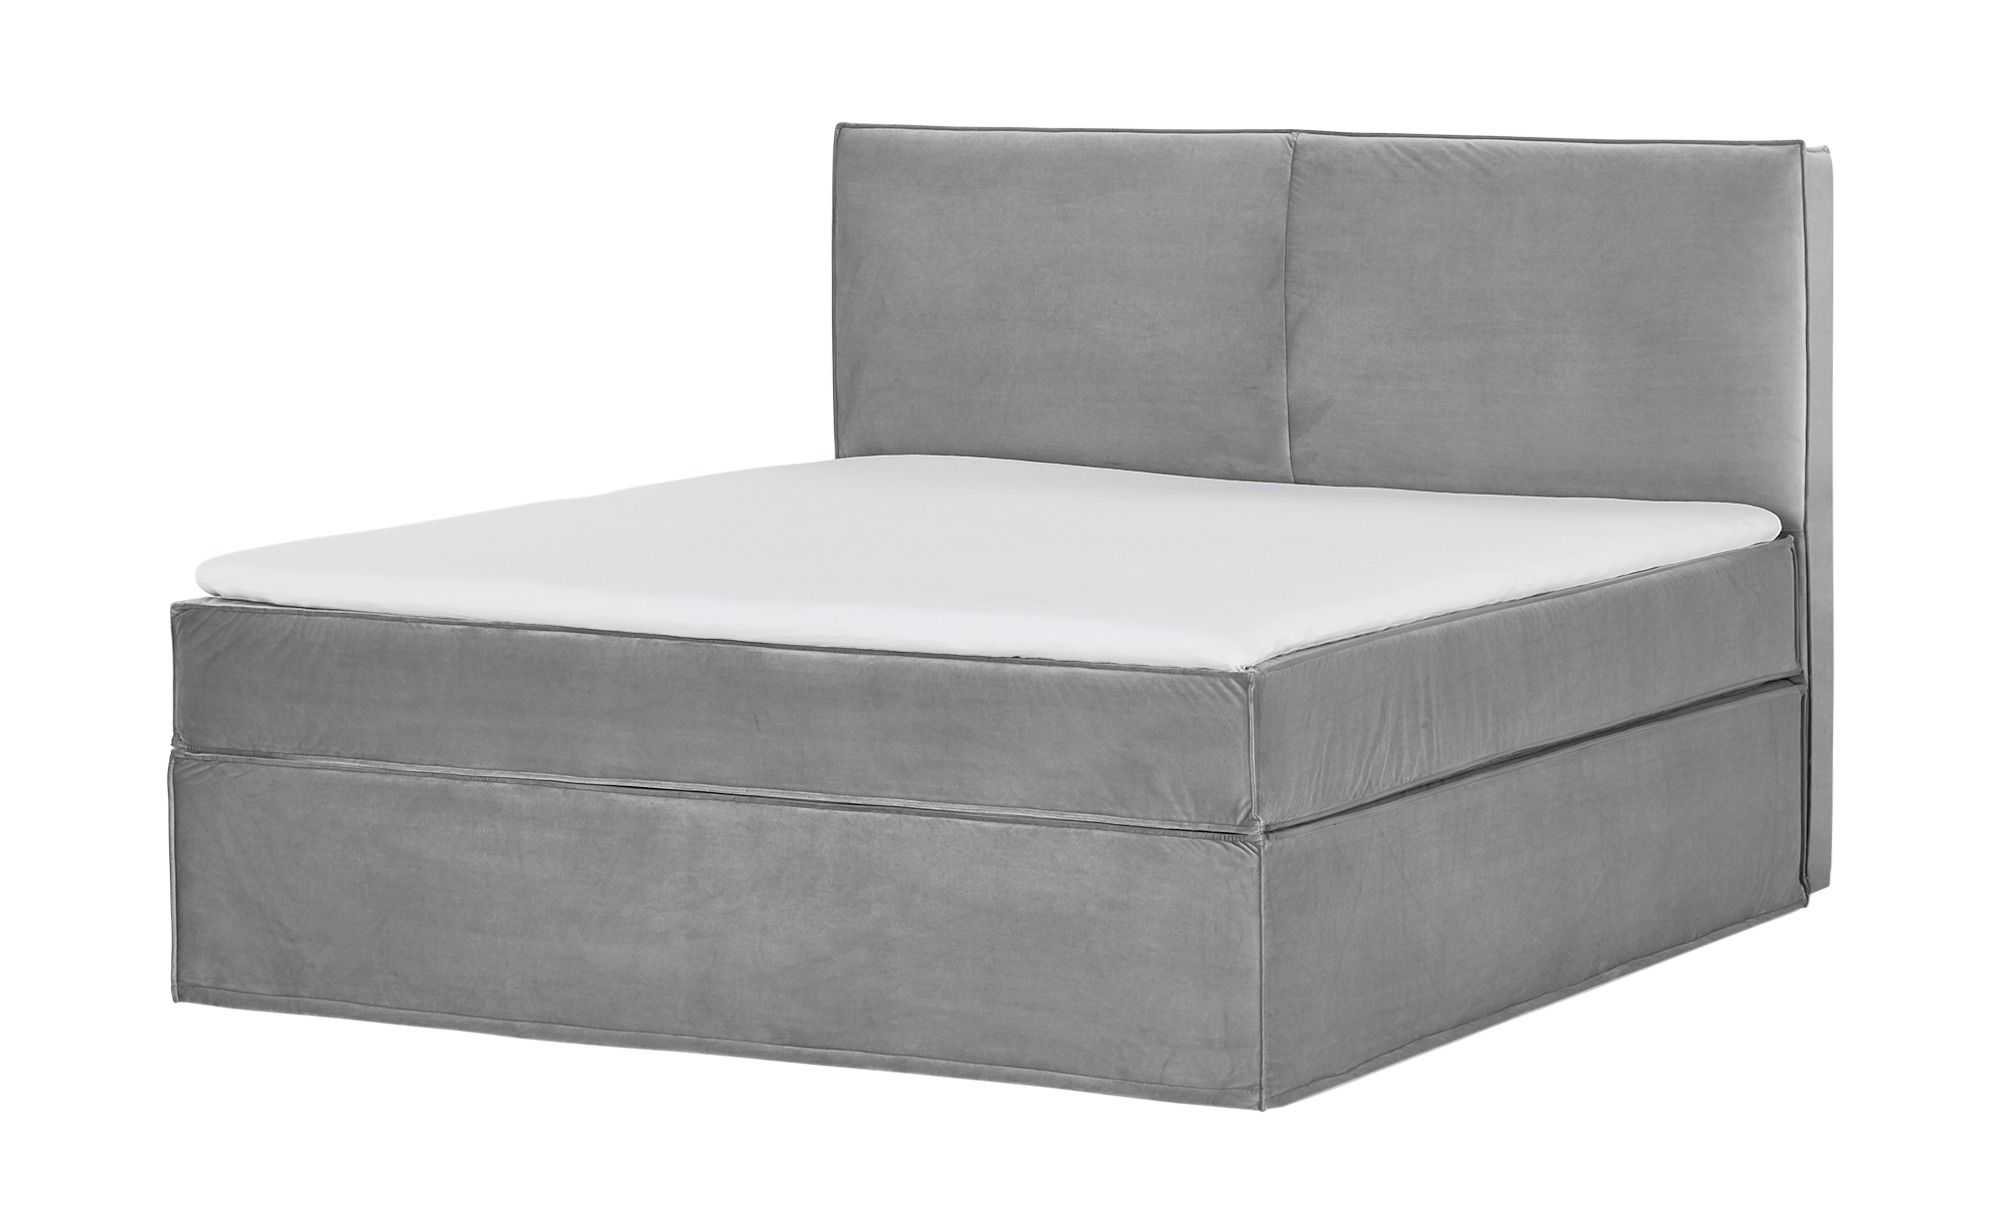 Photo of Boxi Urban box spring bed, found at Möbel Höffner